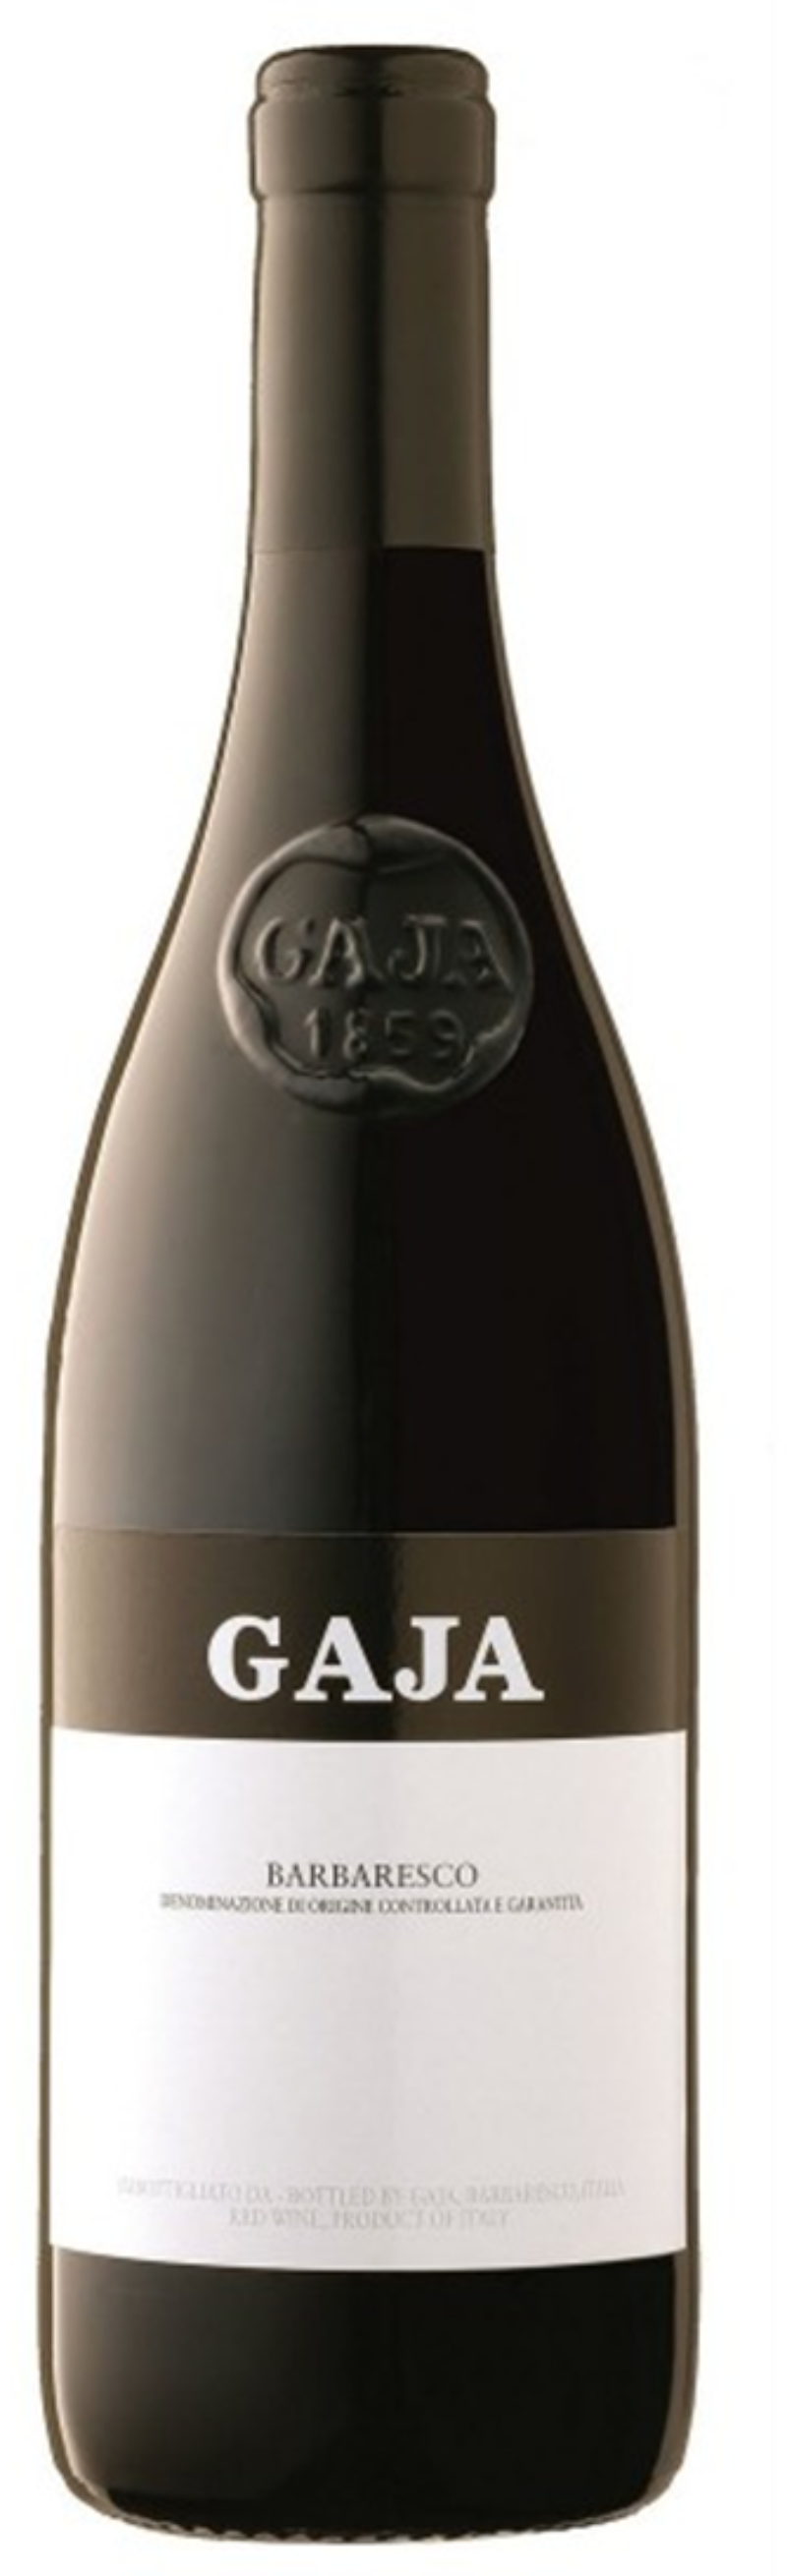 BARBARESCO-DOCG-GAJA-1995